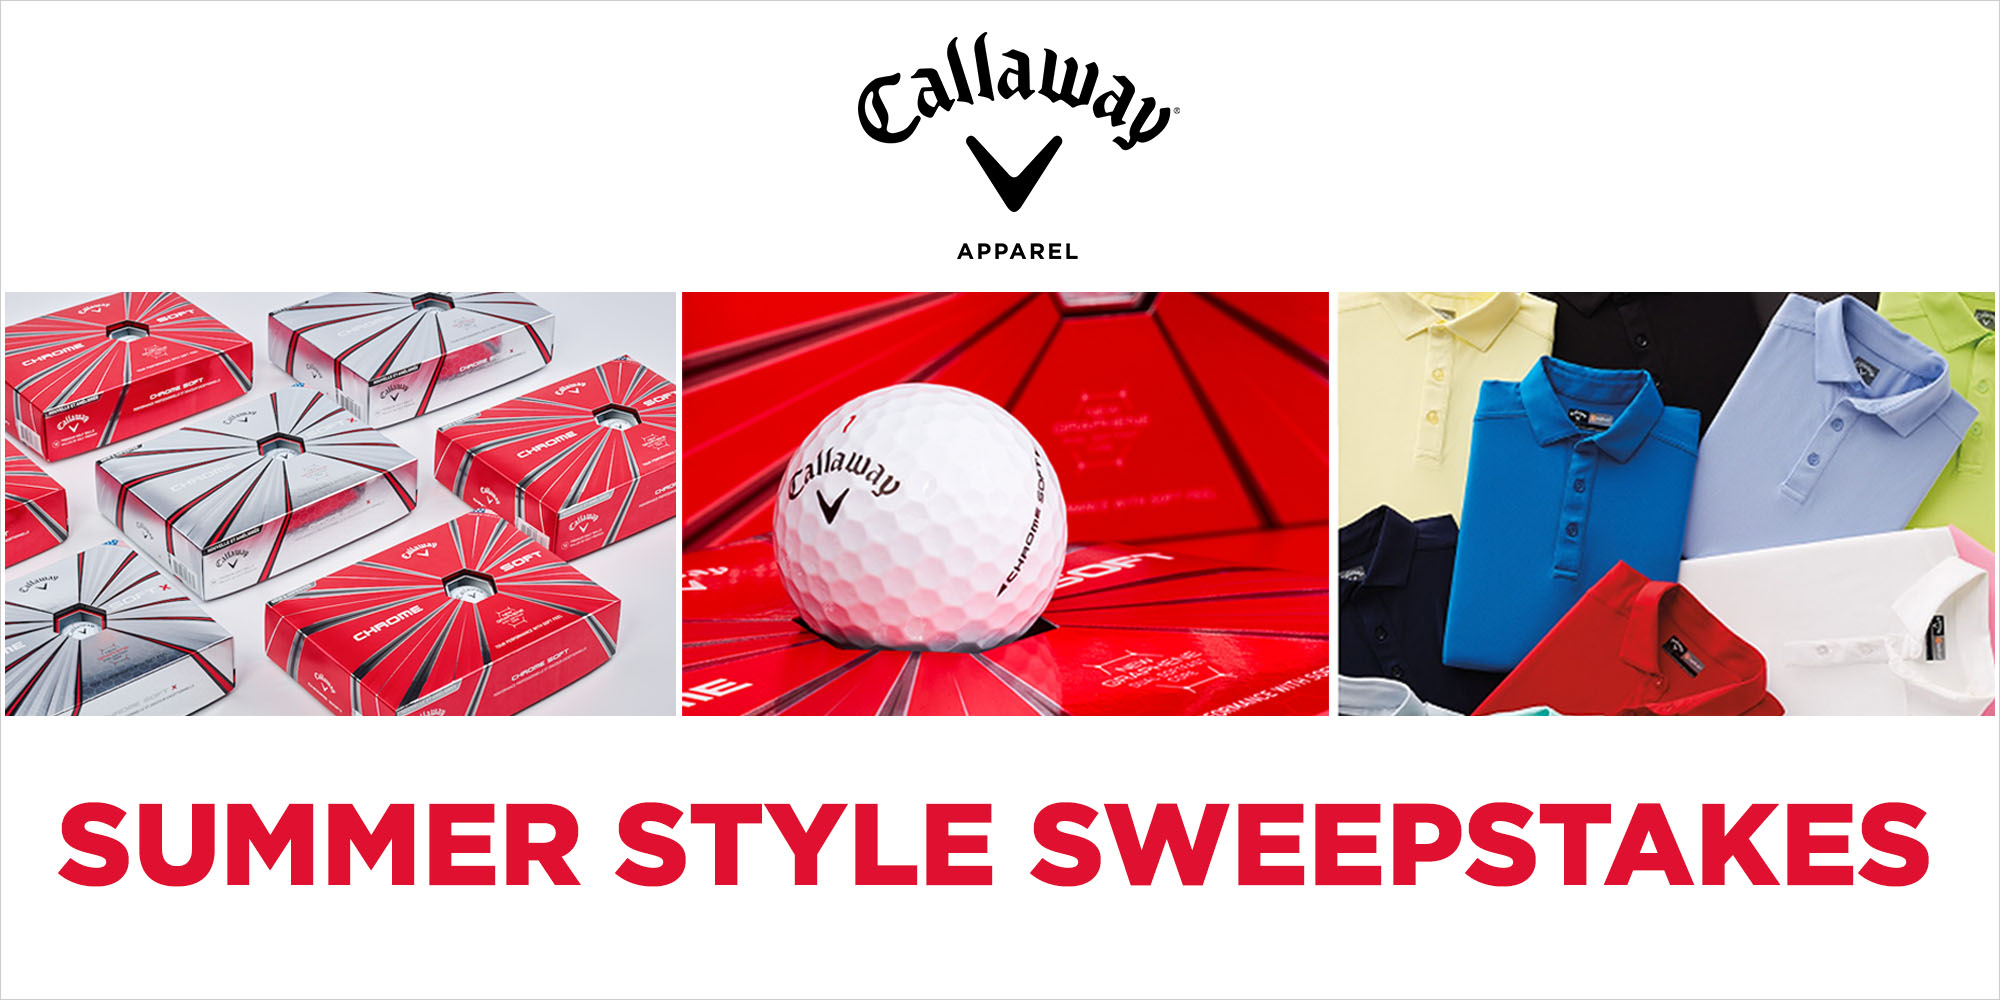 Callaway Apparel Summer Sweepstakes - The Golf Wire